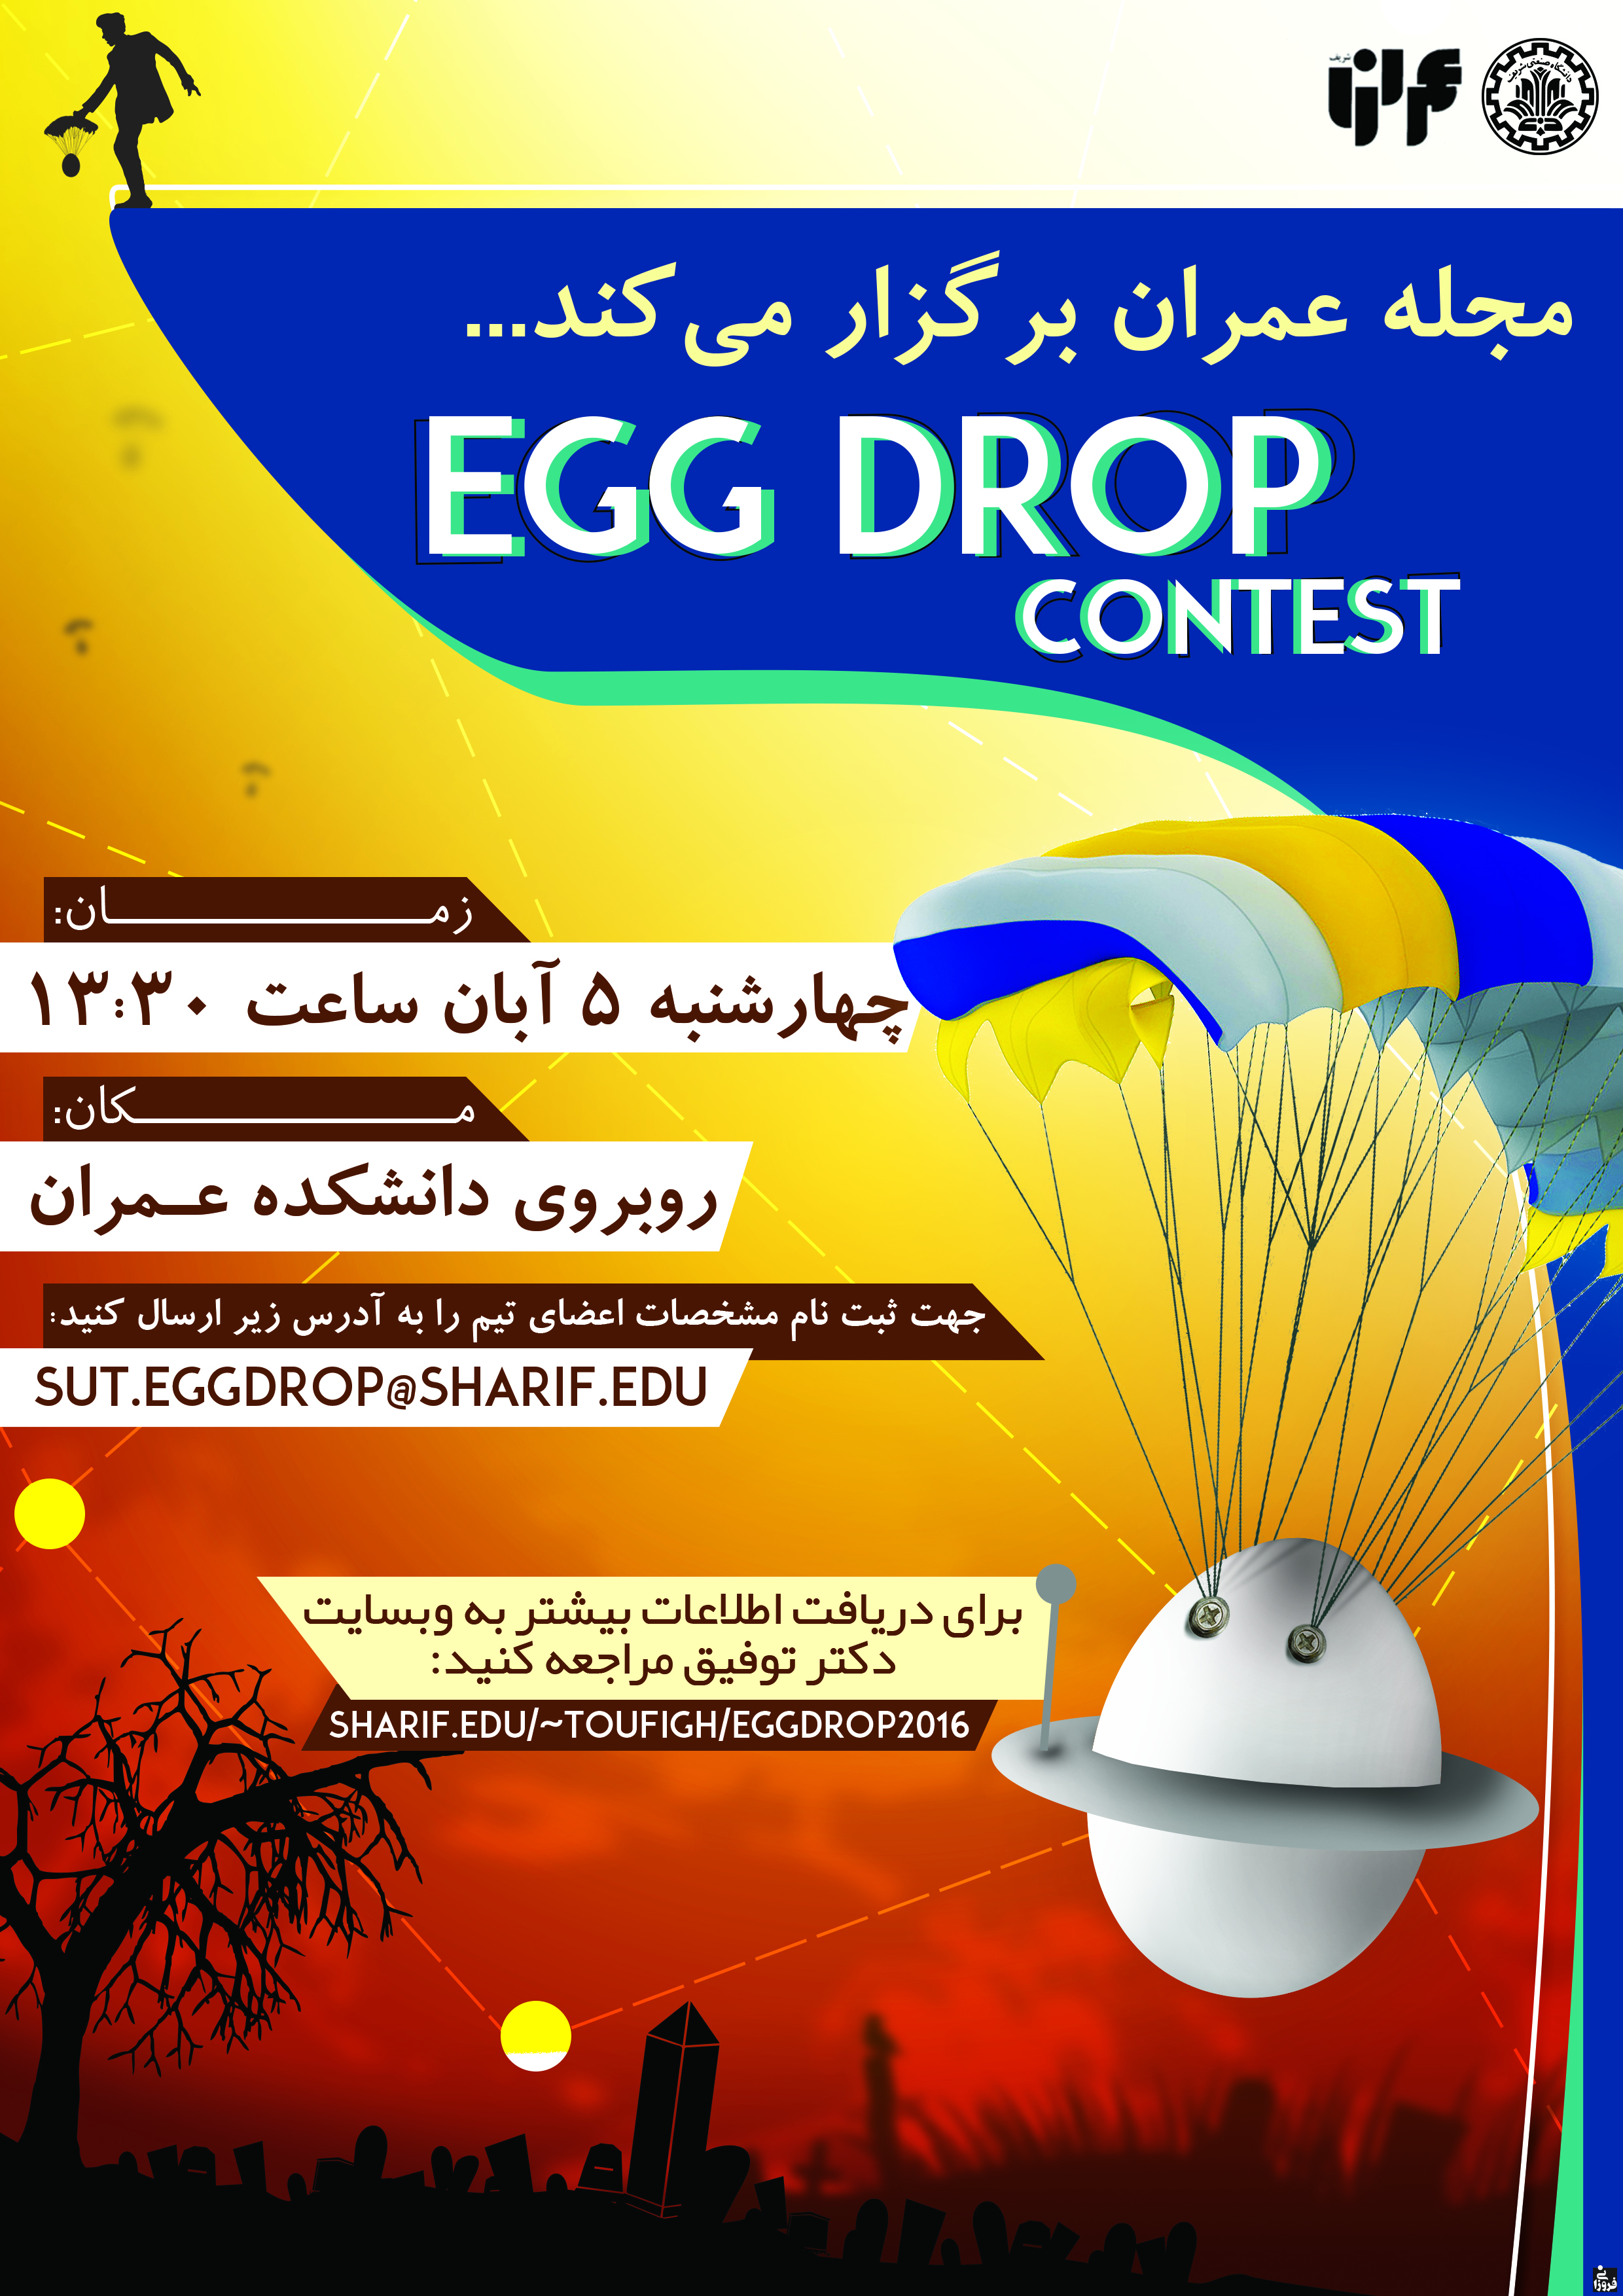 Naked egg drop contest